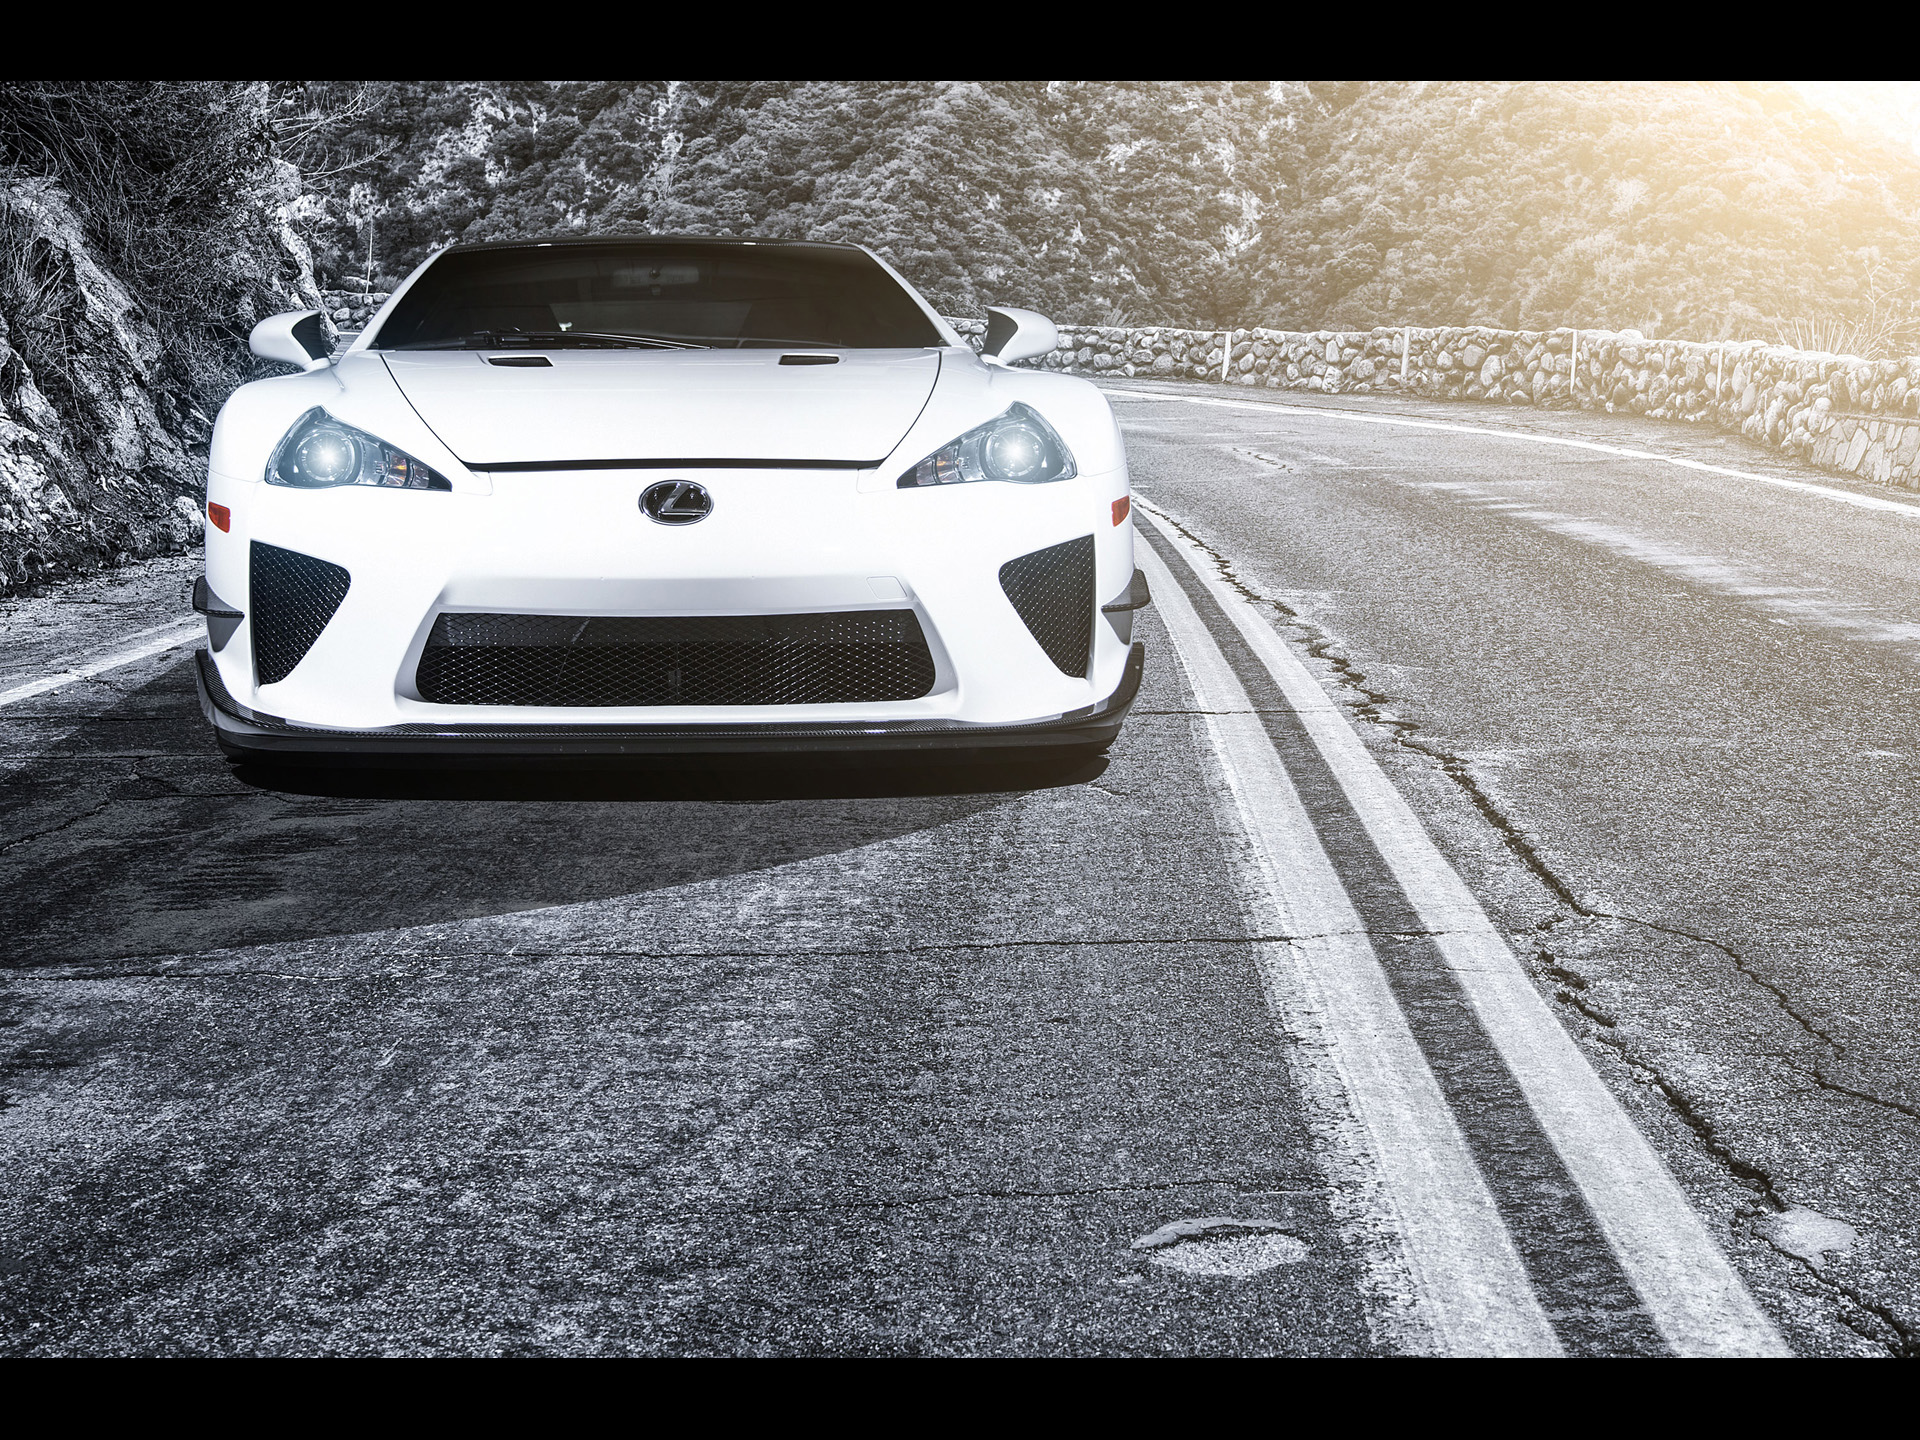 2013 Lexus LFA Nurburgring Edition White Static Front Wallpapers And Stock  Photos